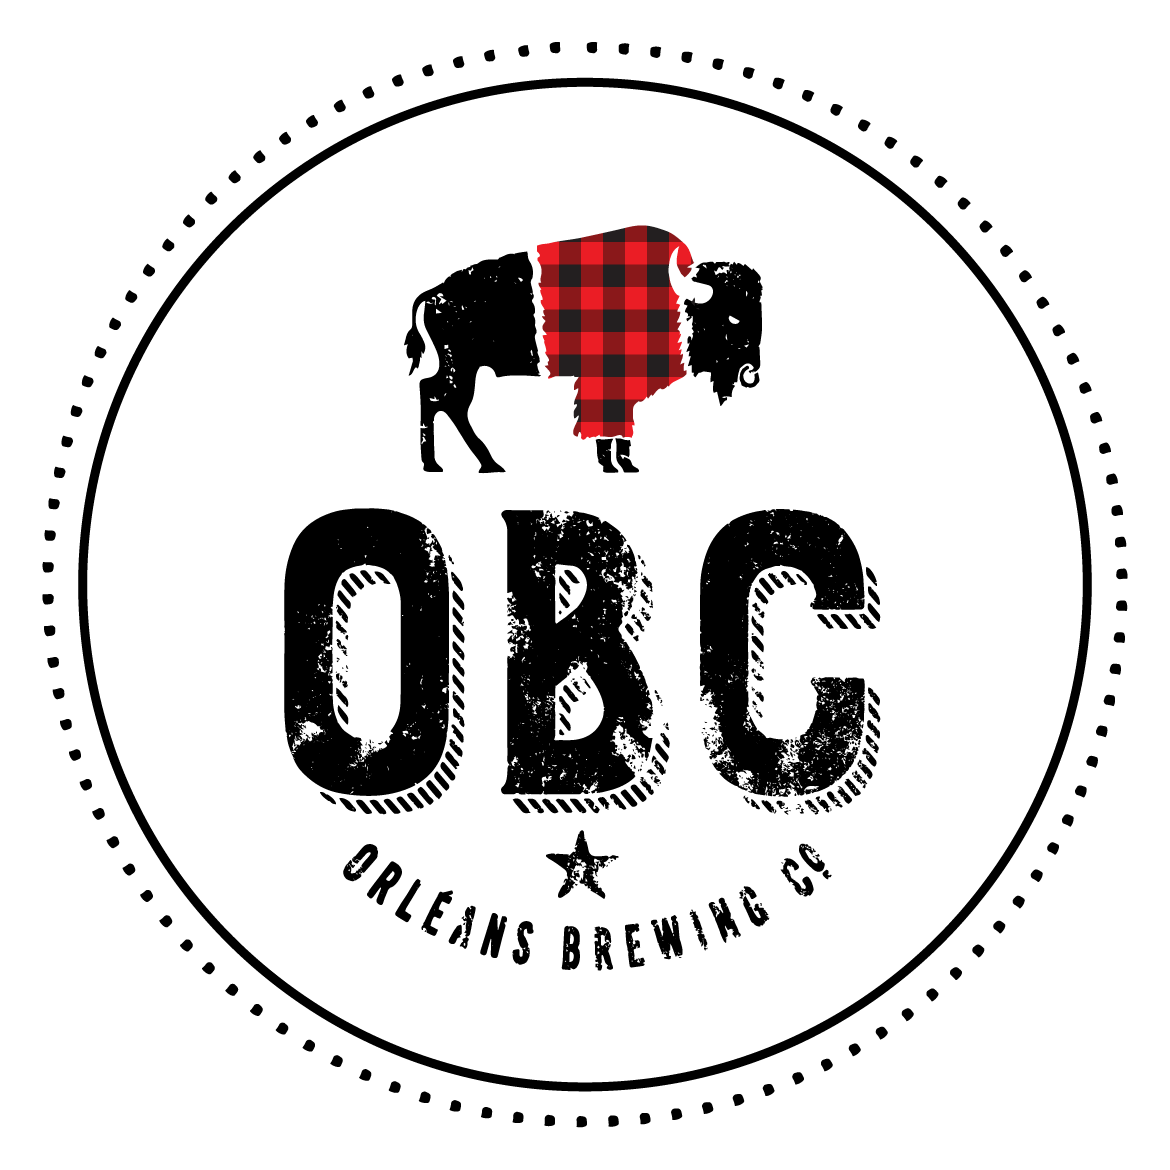 Orléans Brewing Co.